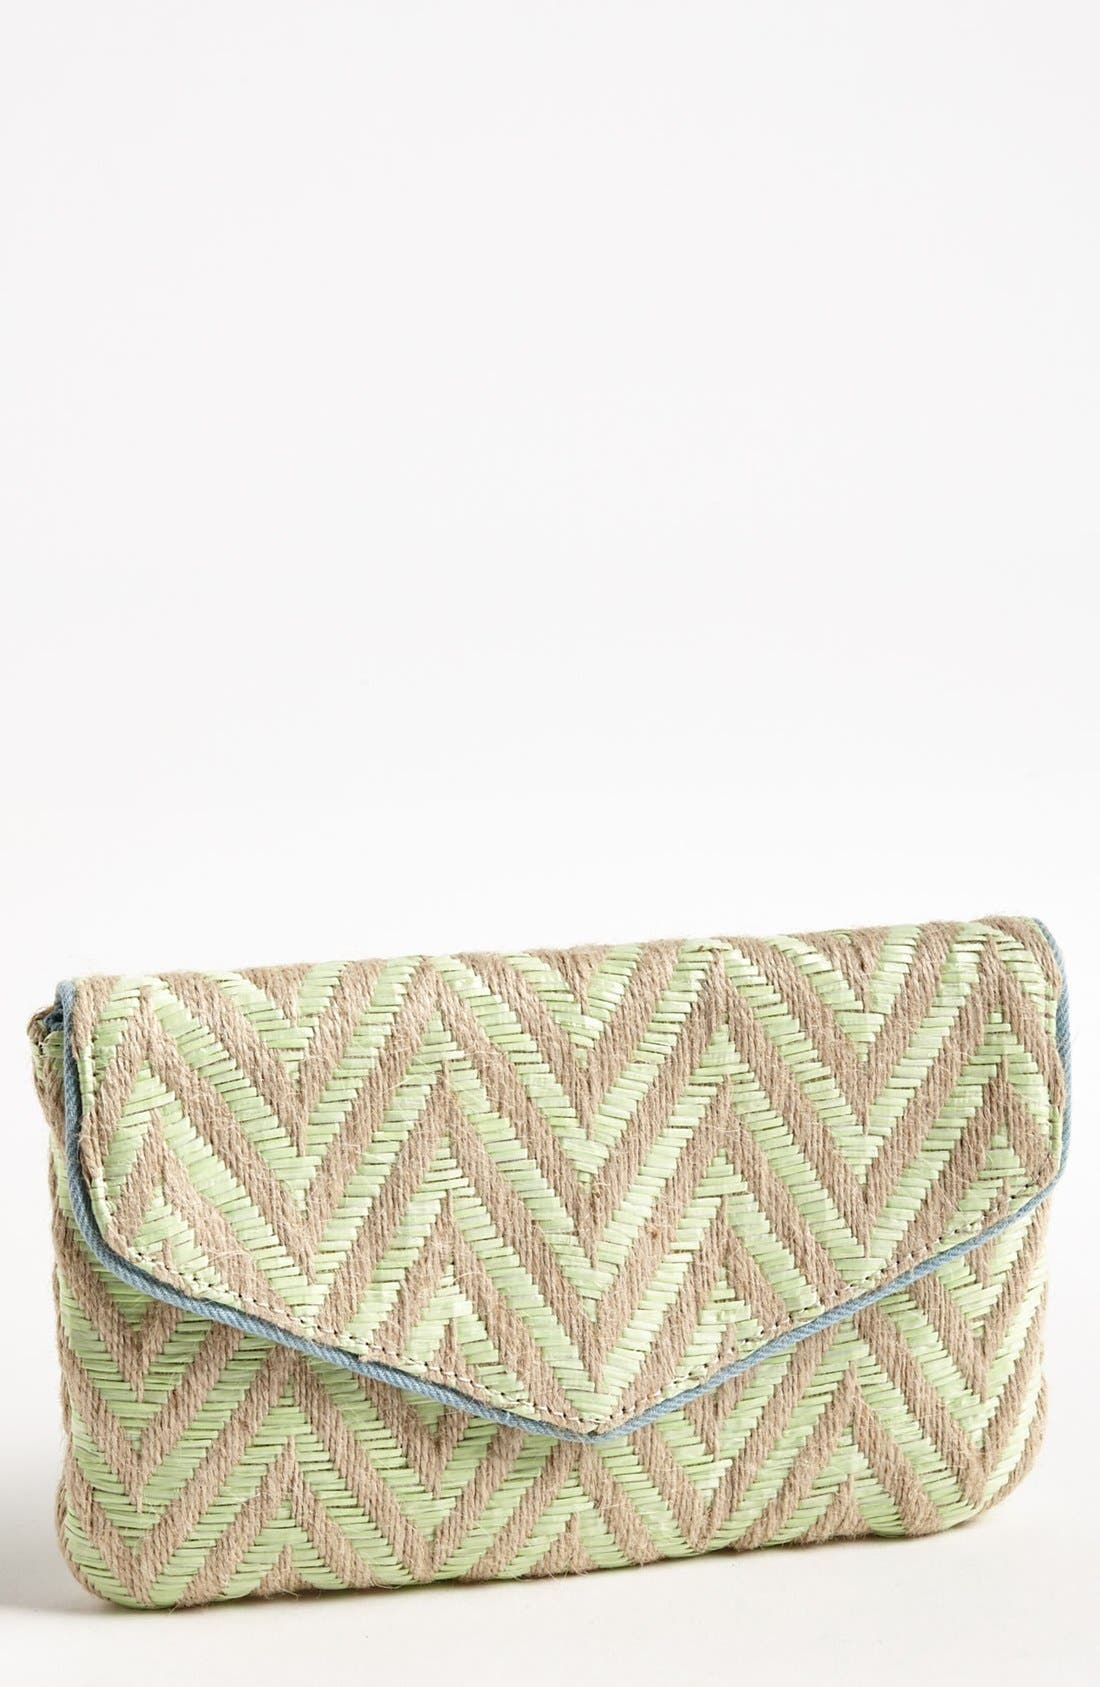 Alternate Image 1 Selected - Deux Lux 'Memo' Clutch